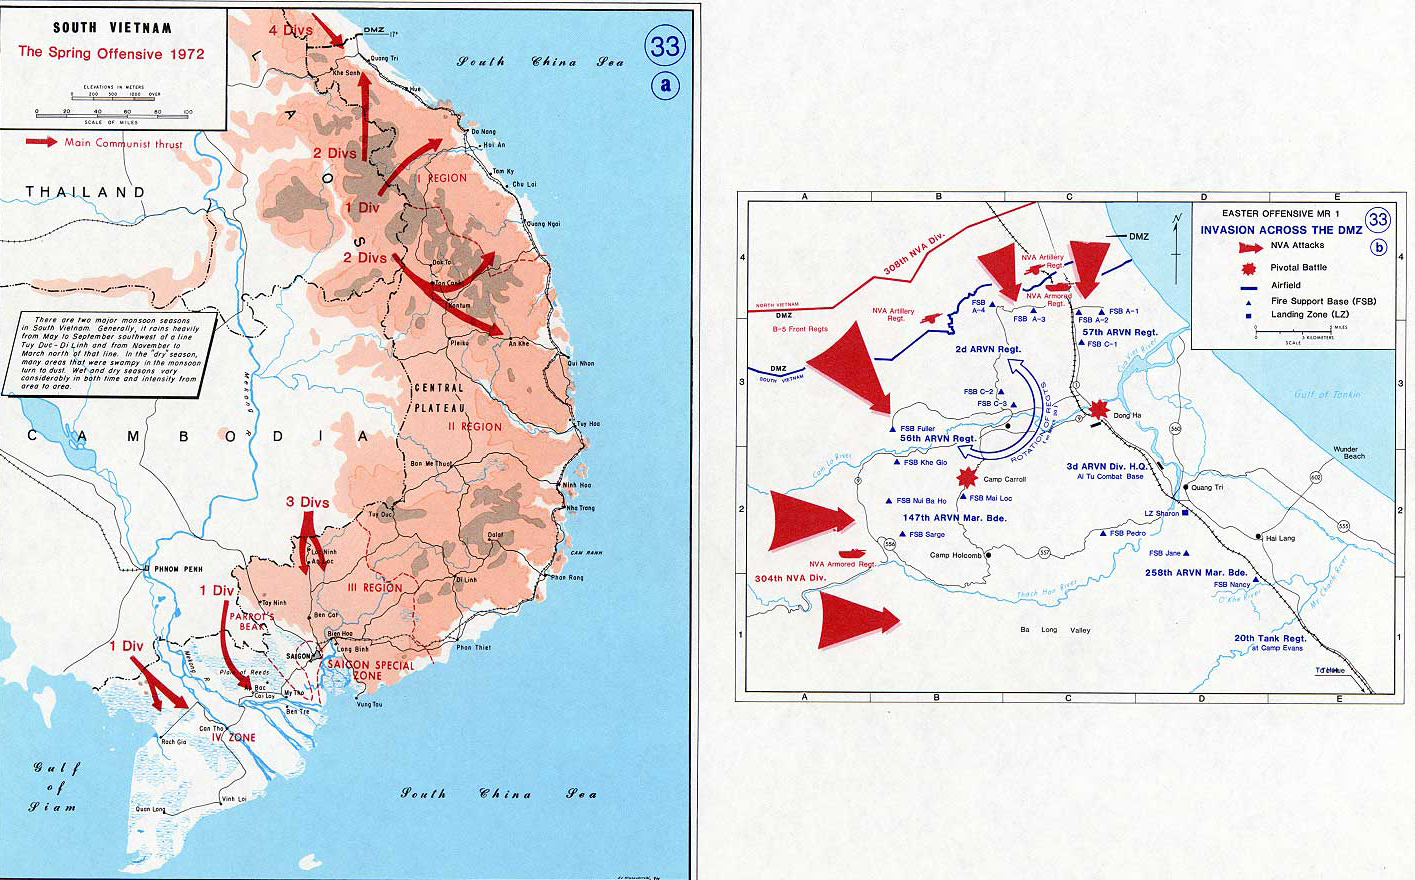 History Map of the Vietnam War. South Vietnam, Spring Offensive 1972, Invasion Across the DMZ.